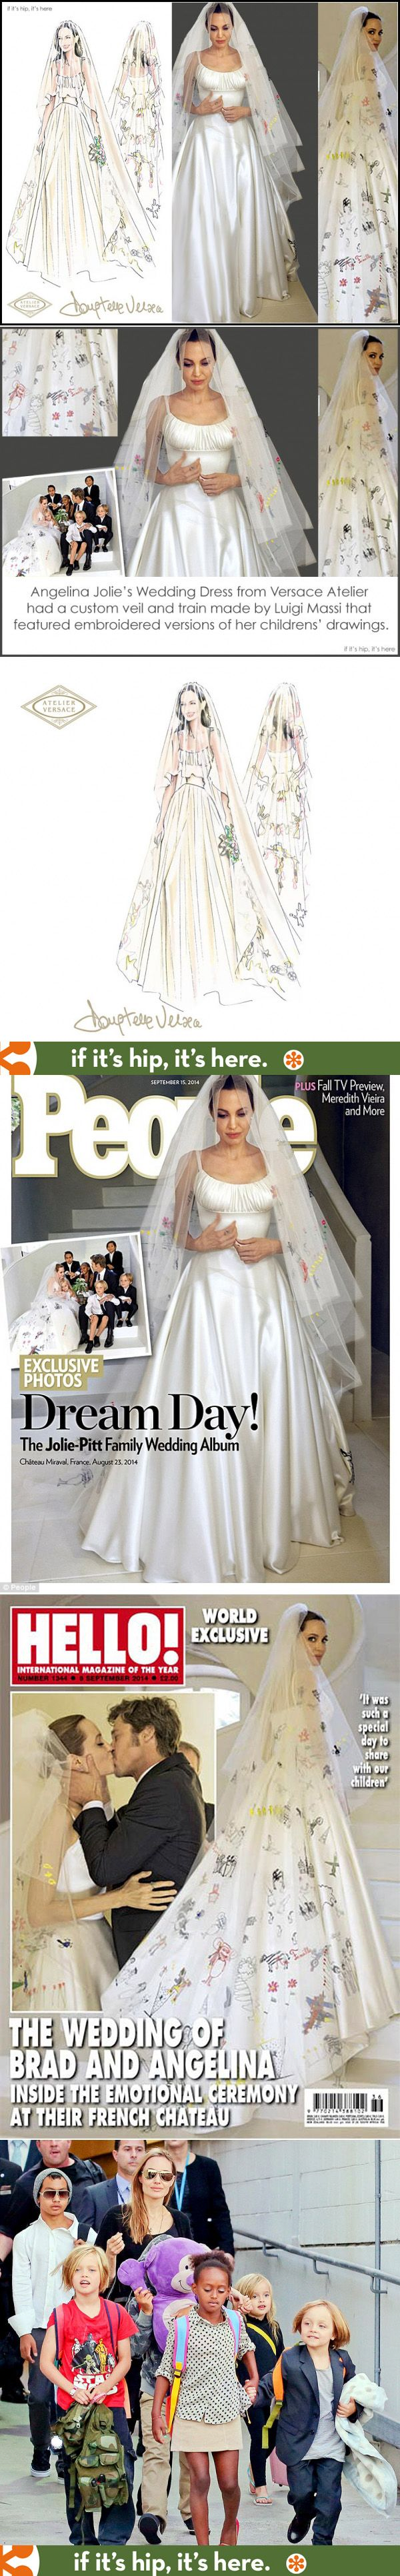 The best look at Angelina Jolie's wedding dress and veil. More at http://www.ifitshipitshere.com/angelina-jolie-pitts-wedding-gown-veil-decorated-childrens-art/